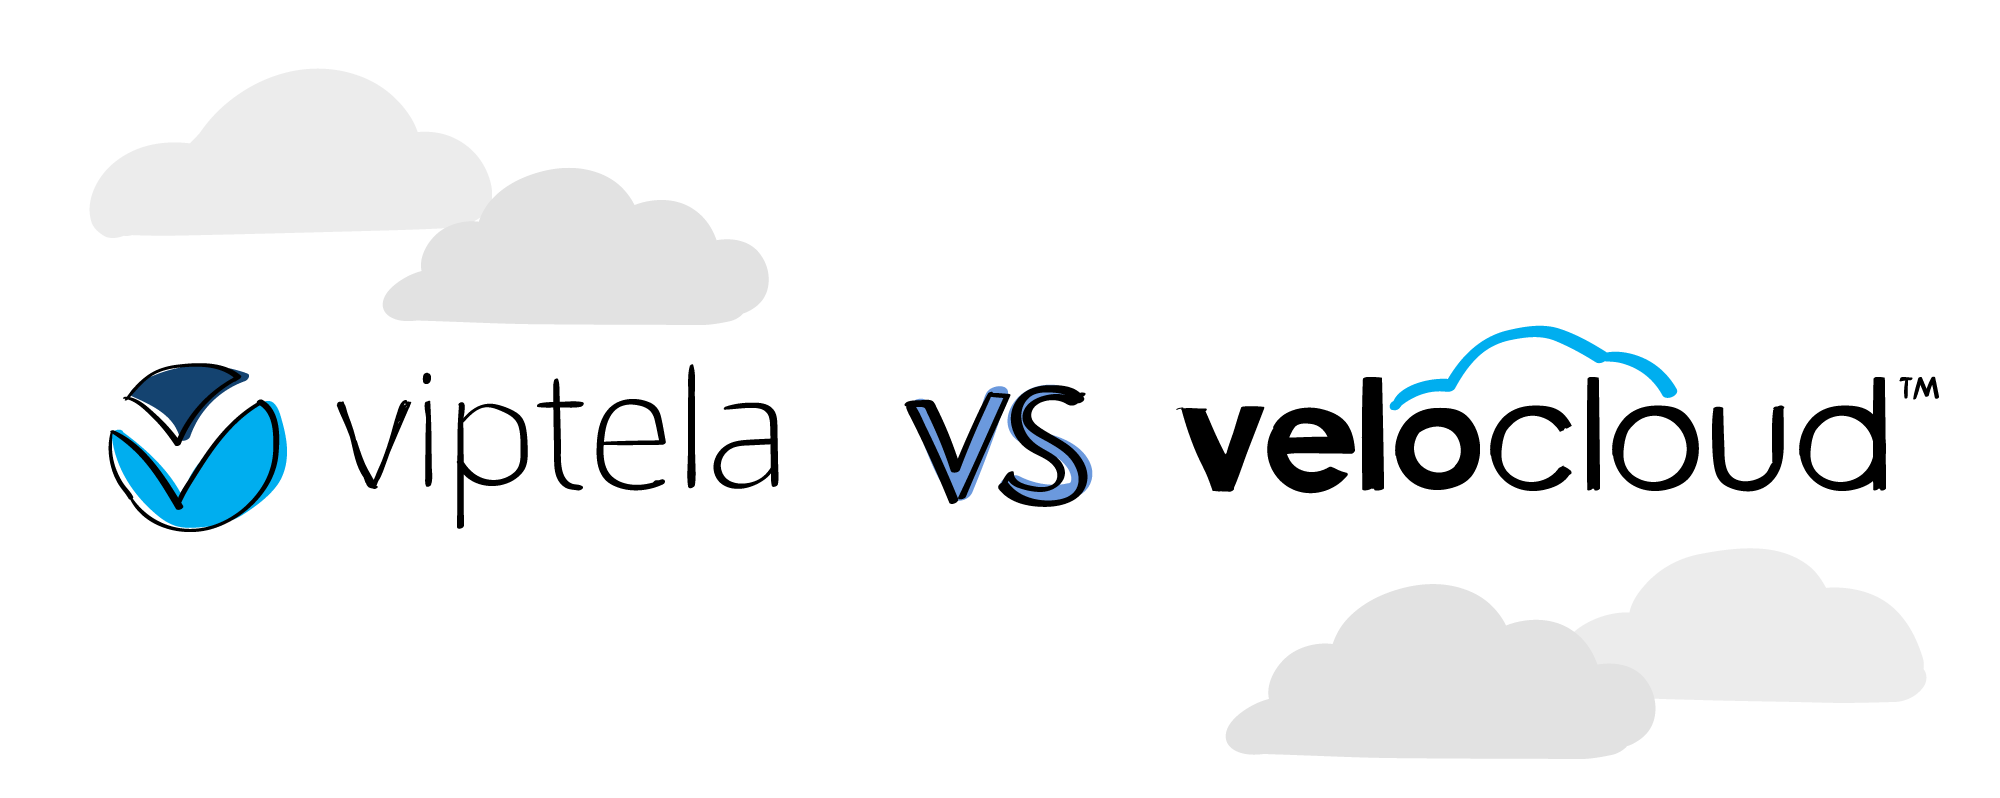 What are the differences between Cisco Viptela vs VeloCloud?